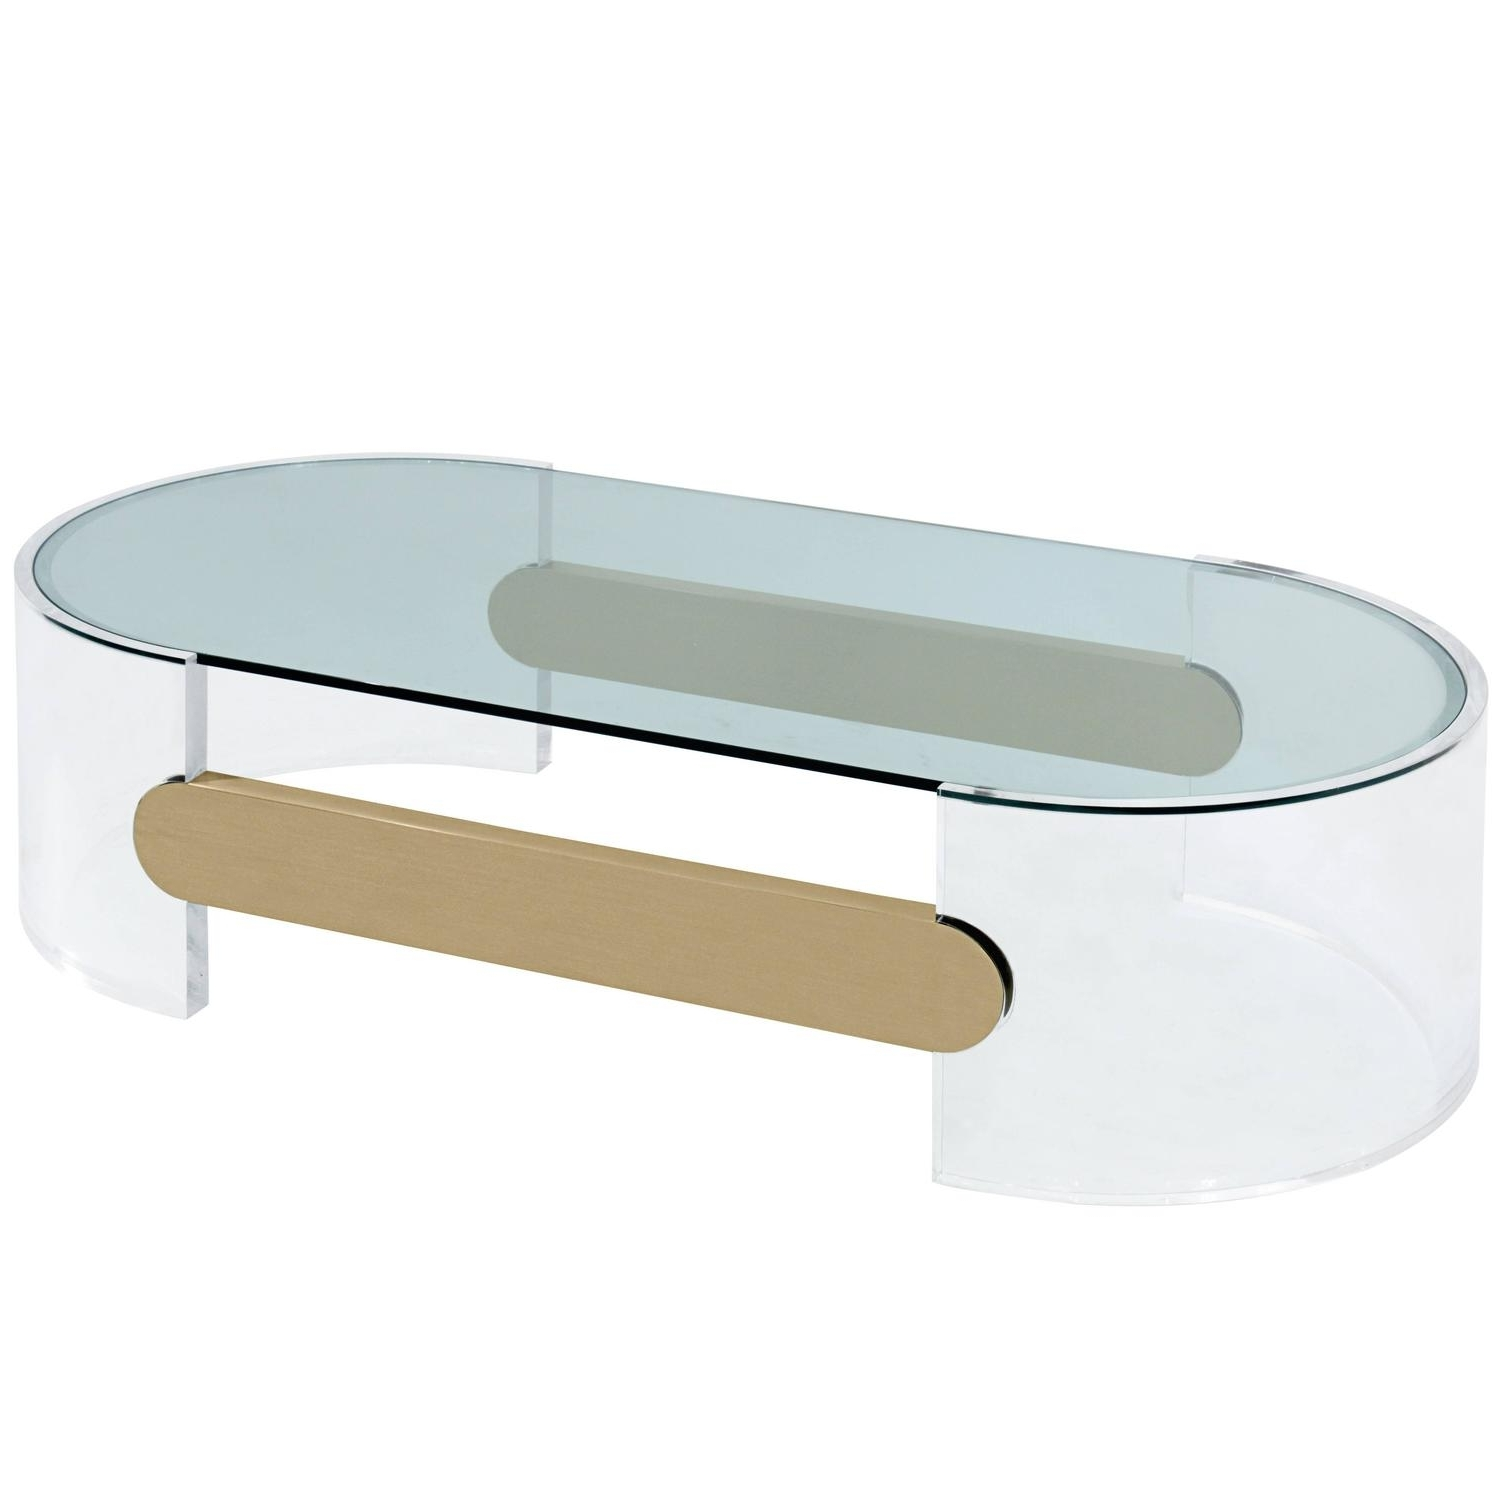 Coffee Table In Lucite With Brushed Brass Stretchersraymond Regarding Best And Newest Acrylic & Brushed Brass Coffee Tables (View 15 of 20)